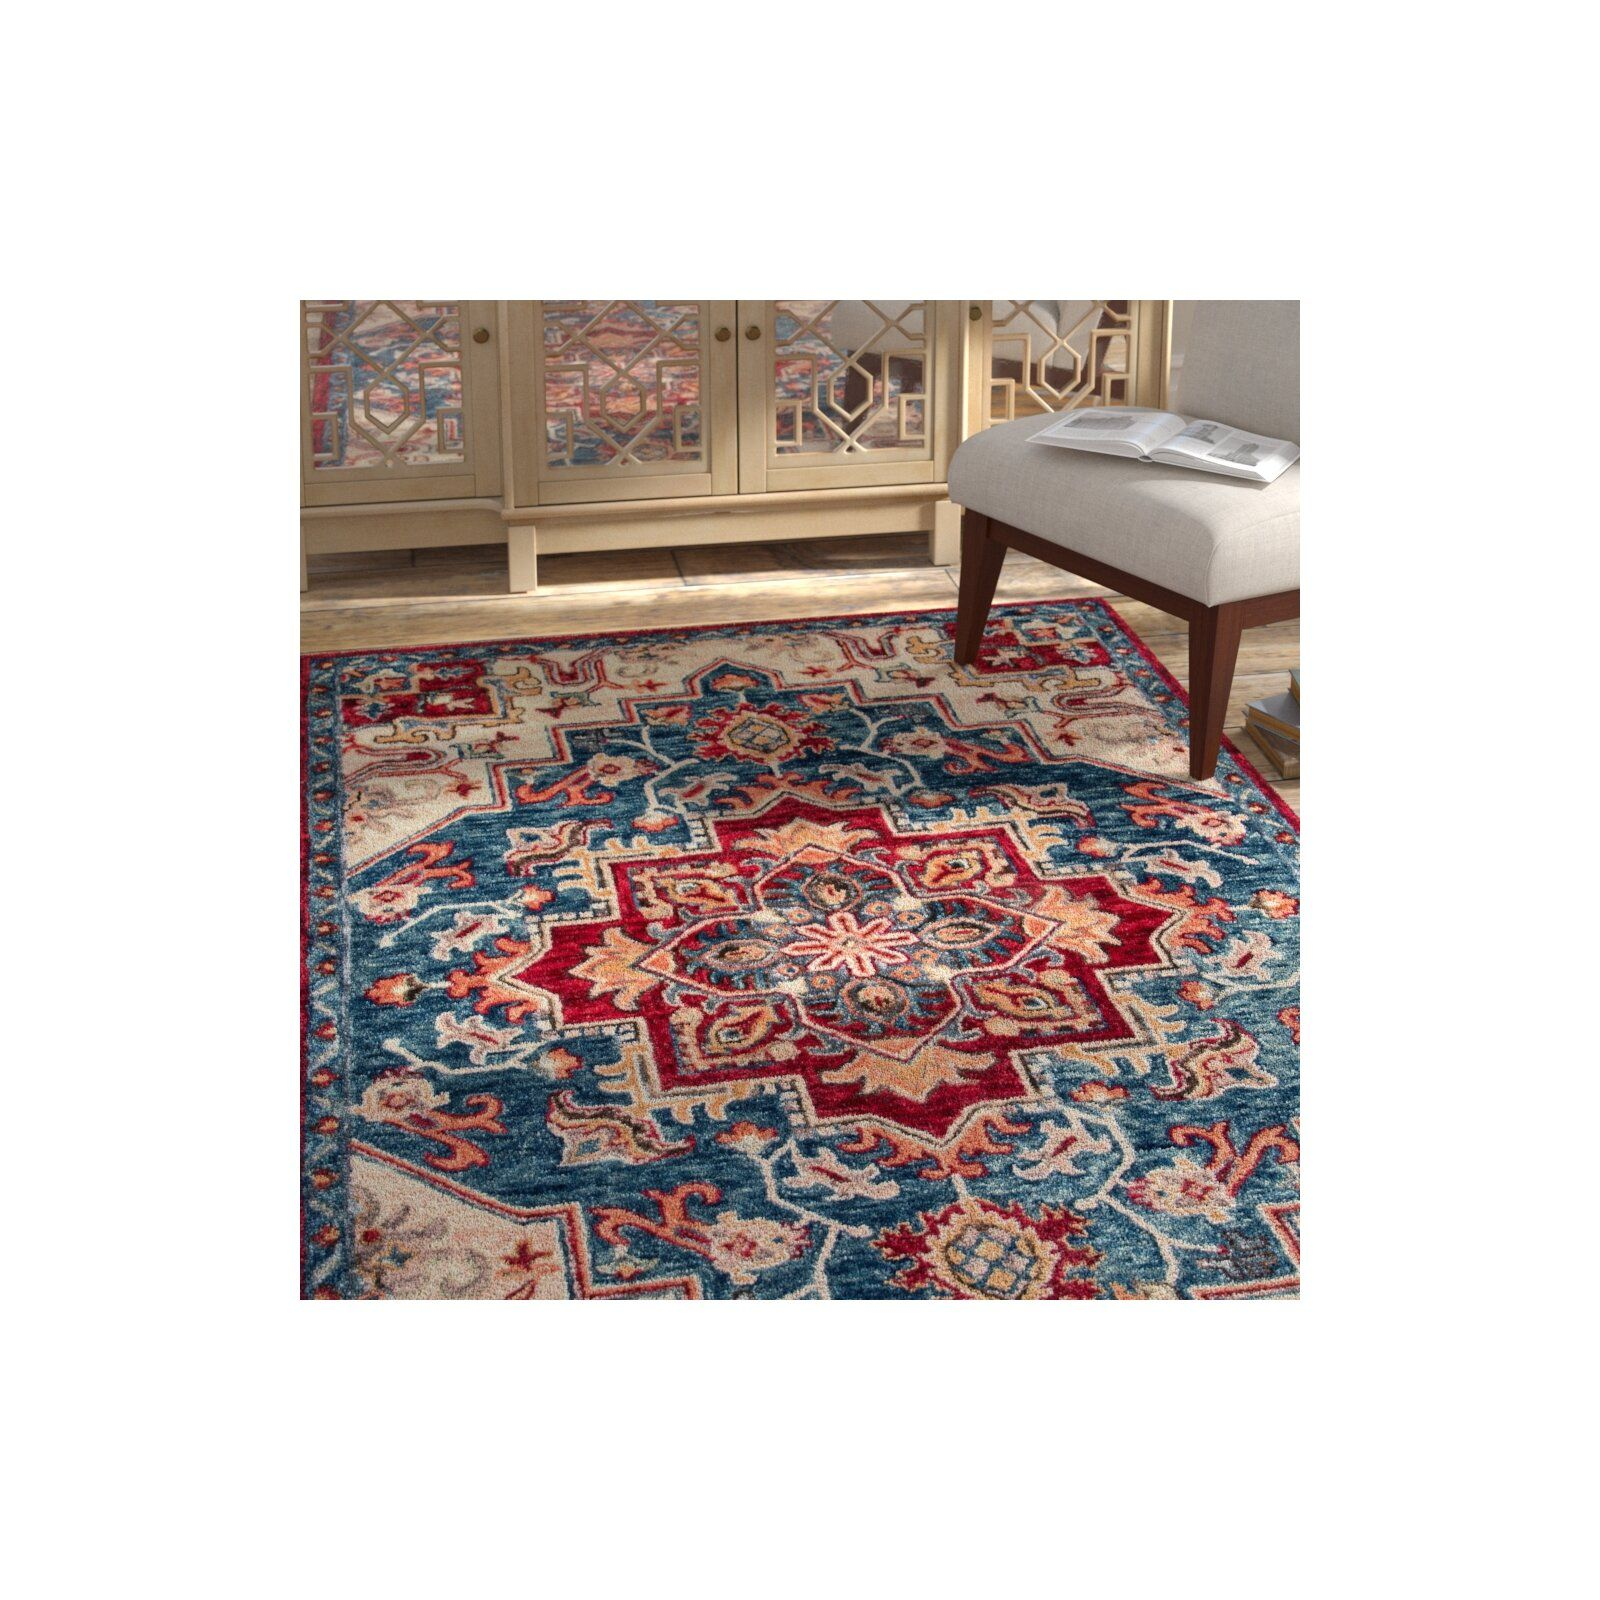 Inyo Oriental Hand Tufted Wool Red Area Rug In 2020 Rugs Area Rugs Red Area Rug